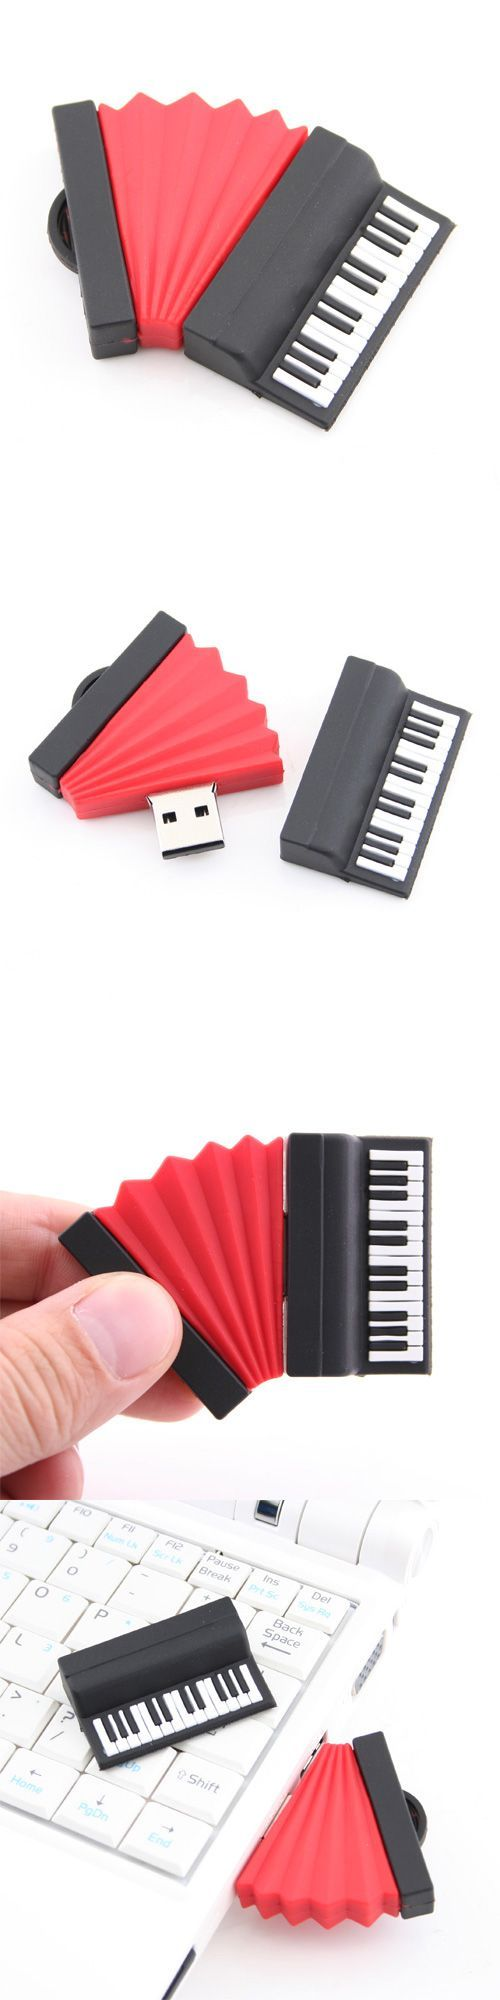 Cute Music Instrument Style USB Flash Drive #duplication #easyreplication #USBDrives https://www.easyreplication.co.uk/